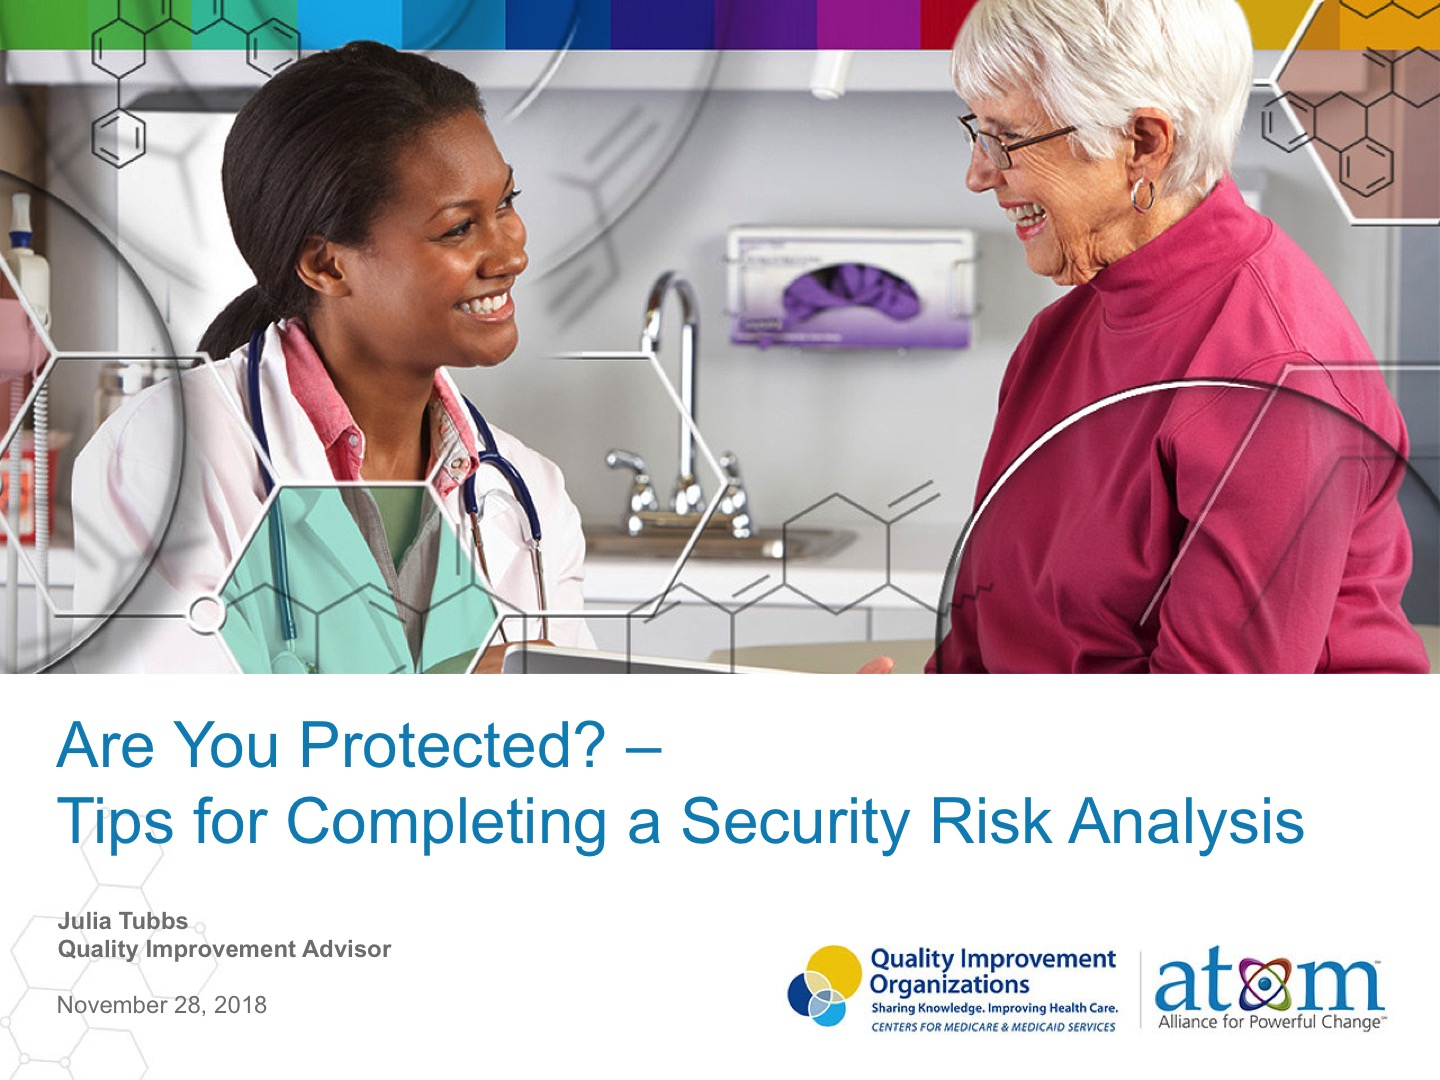 Tips for Completing a Security Risk Analysis